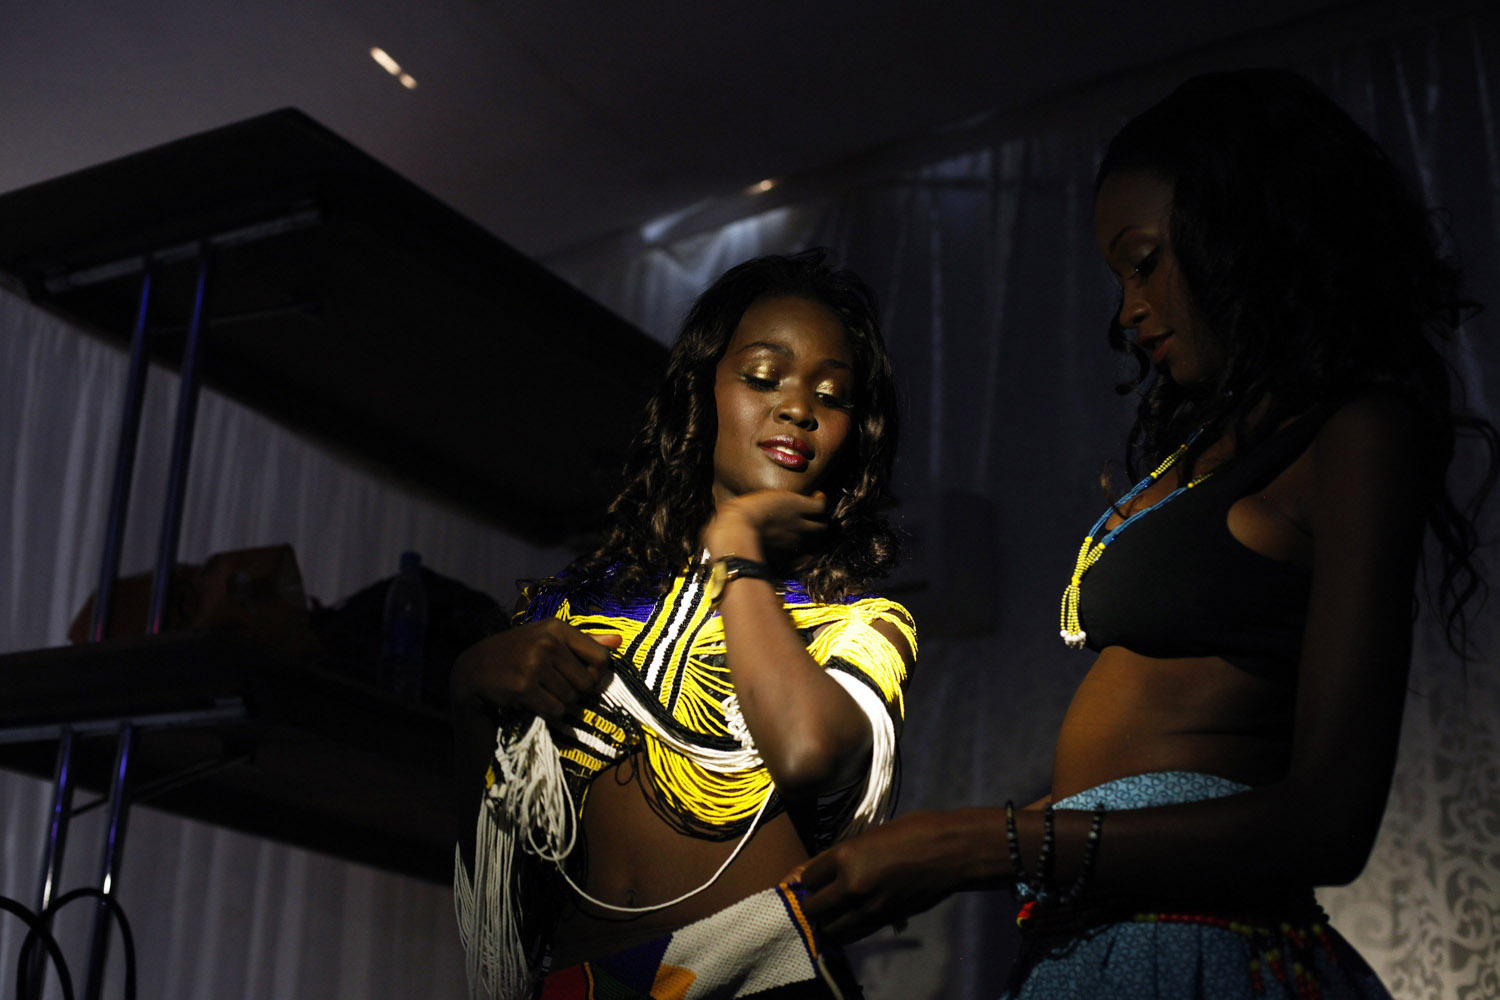 Jul. 13, 2014. Contestants adjust their traditional attire before going on stage for the  Beauties of South Sudan  beauty contest in Juba.